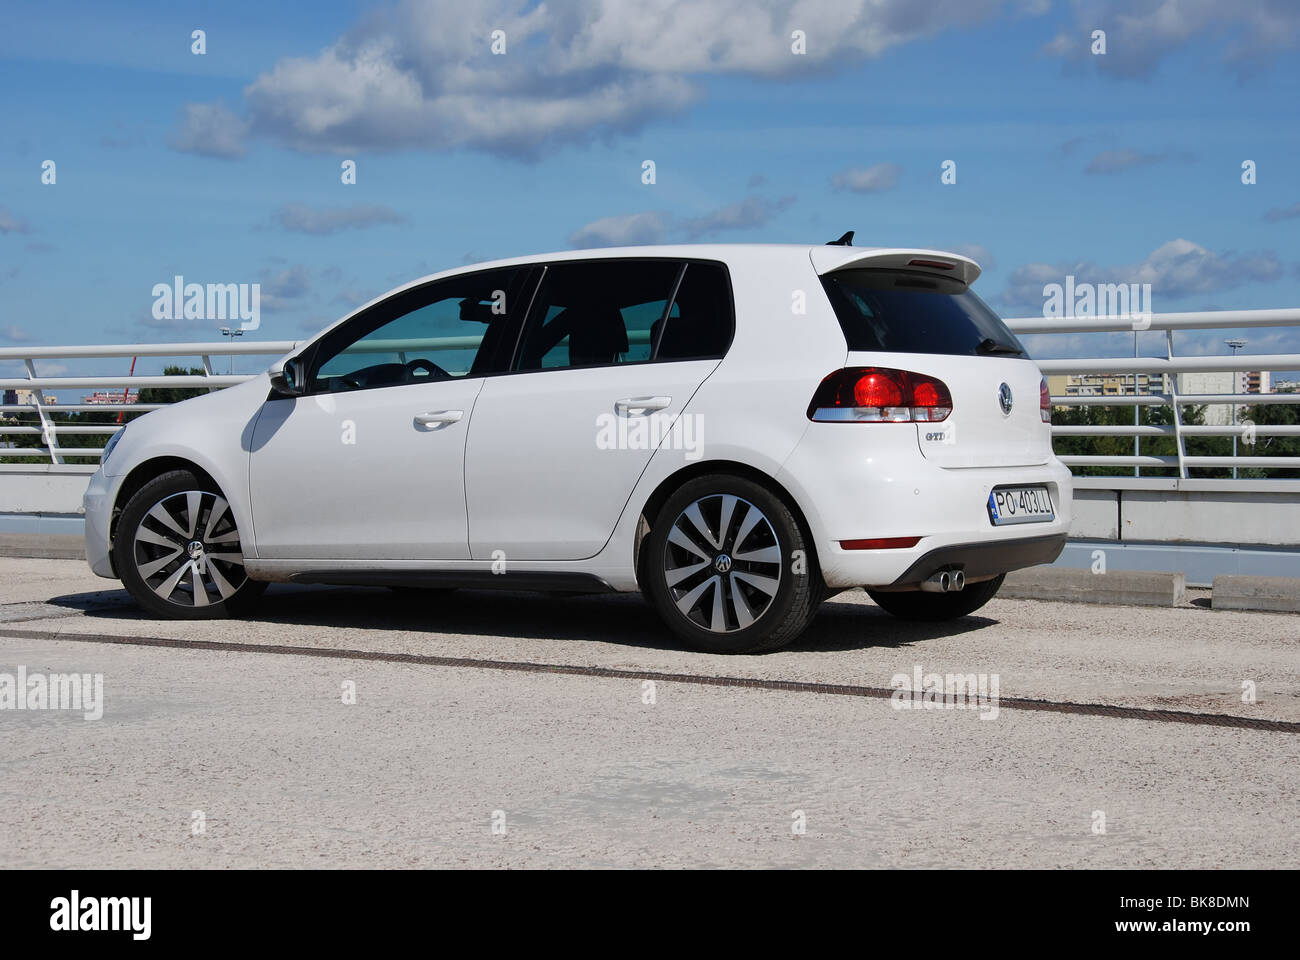 volkswagen golf vi gtd 2009 white five doors 5d german stock photo 29075221 alamy. Black Bedroom Furniture Sets. Home Design Ideas